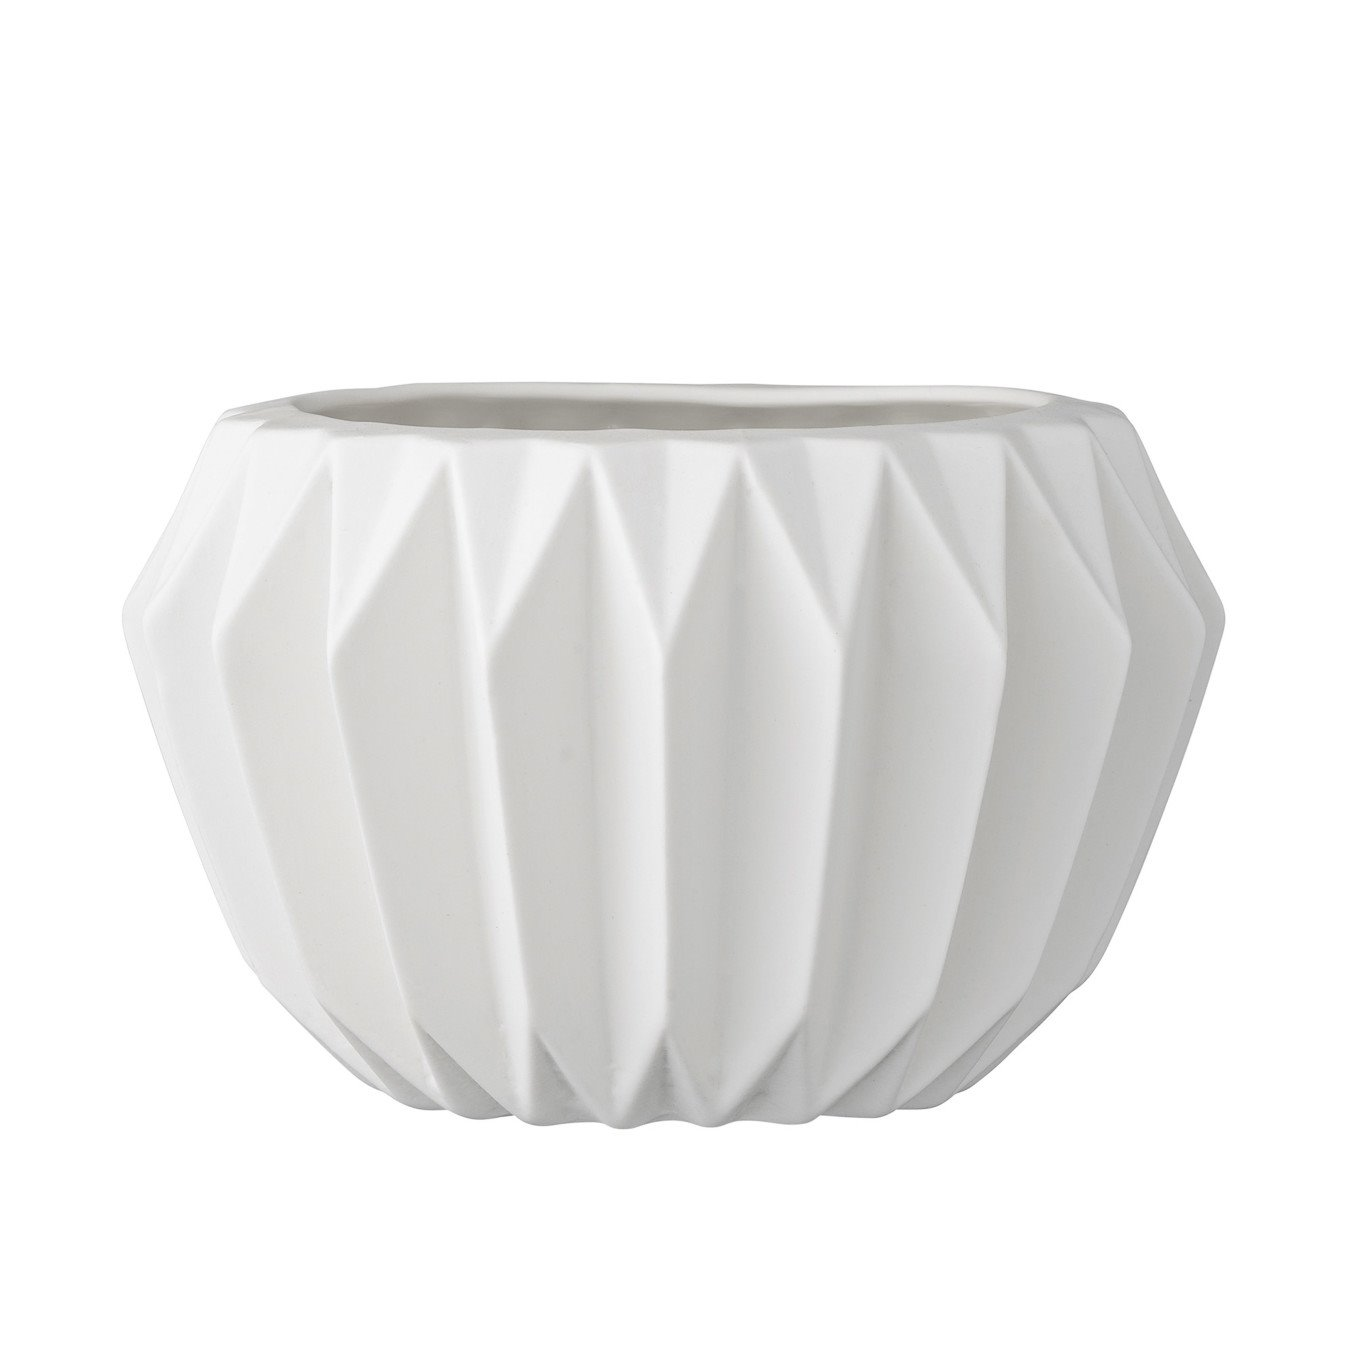 Round White Fluted Ceramic Flower Pot